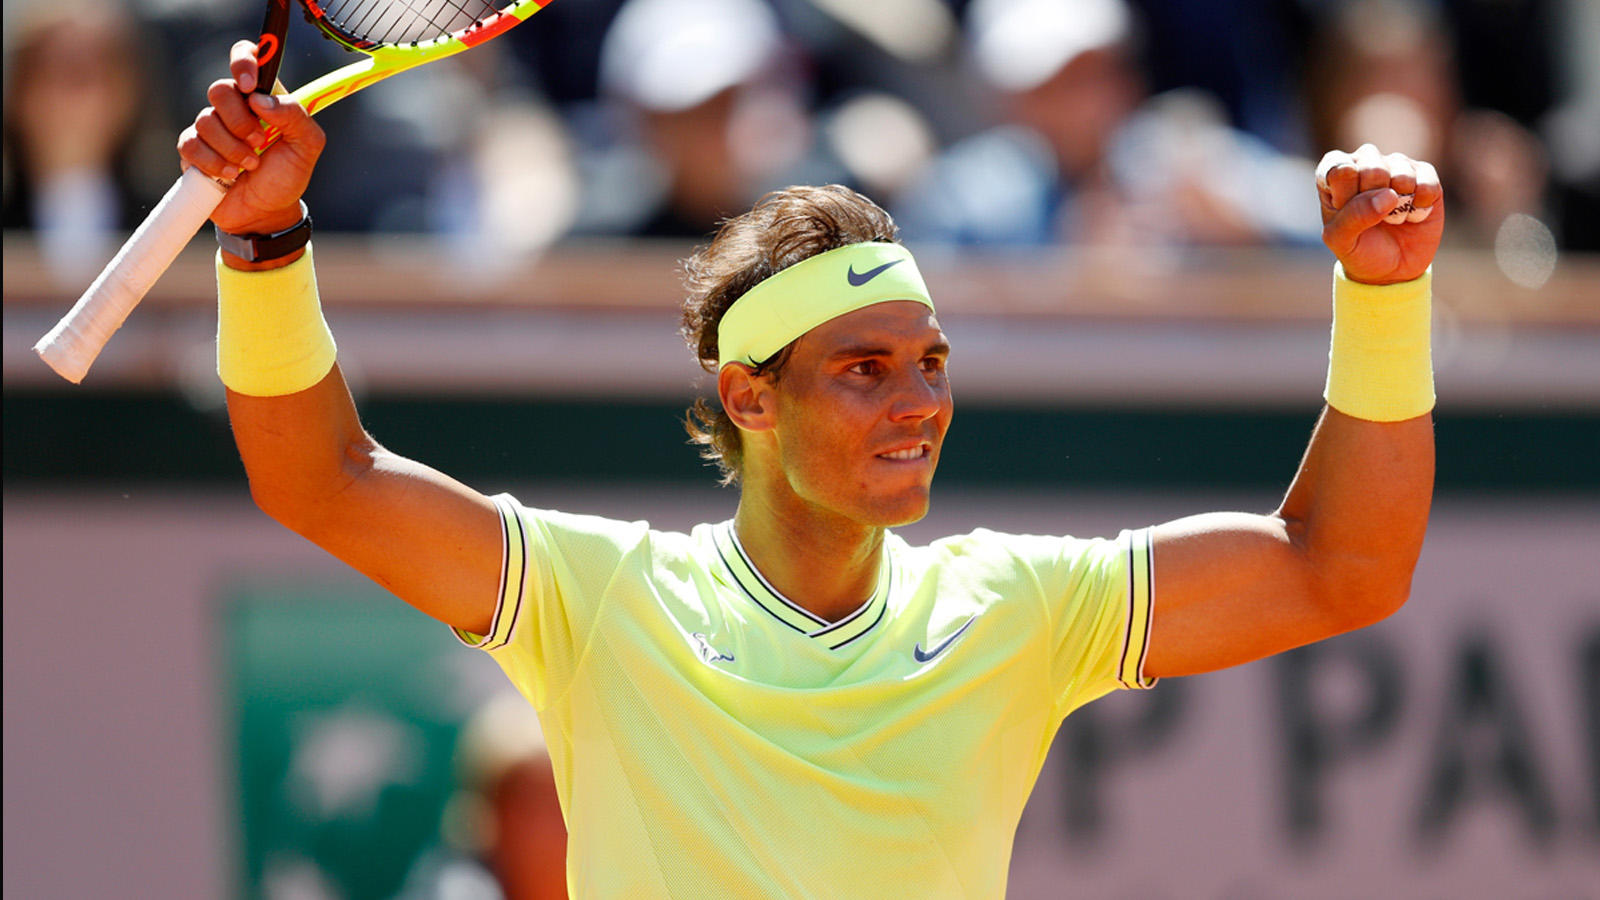 rafael-nadal-beats-roger-federer-to-reach-12th-french-open-final